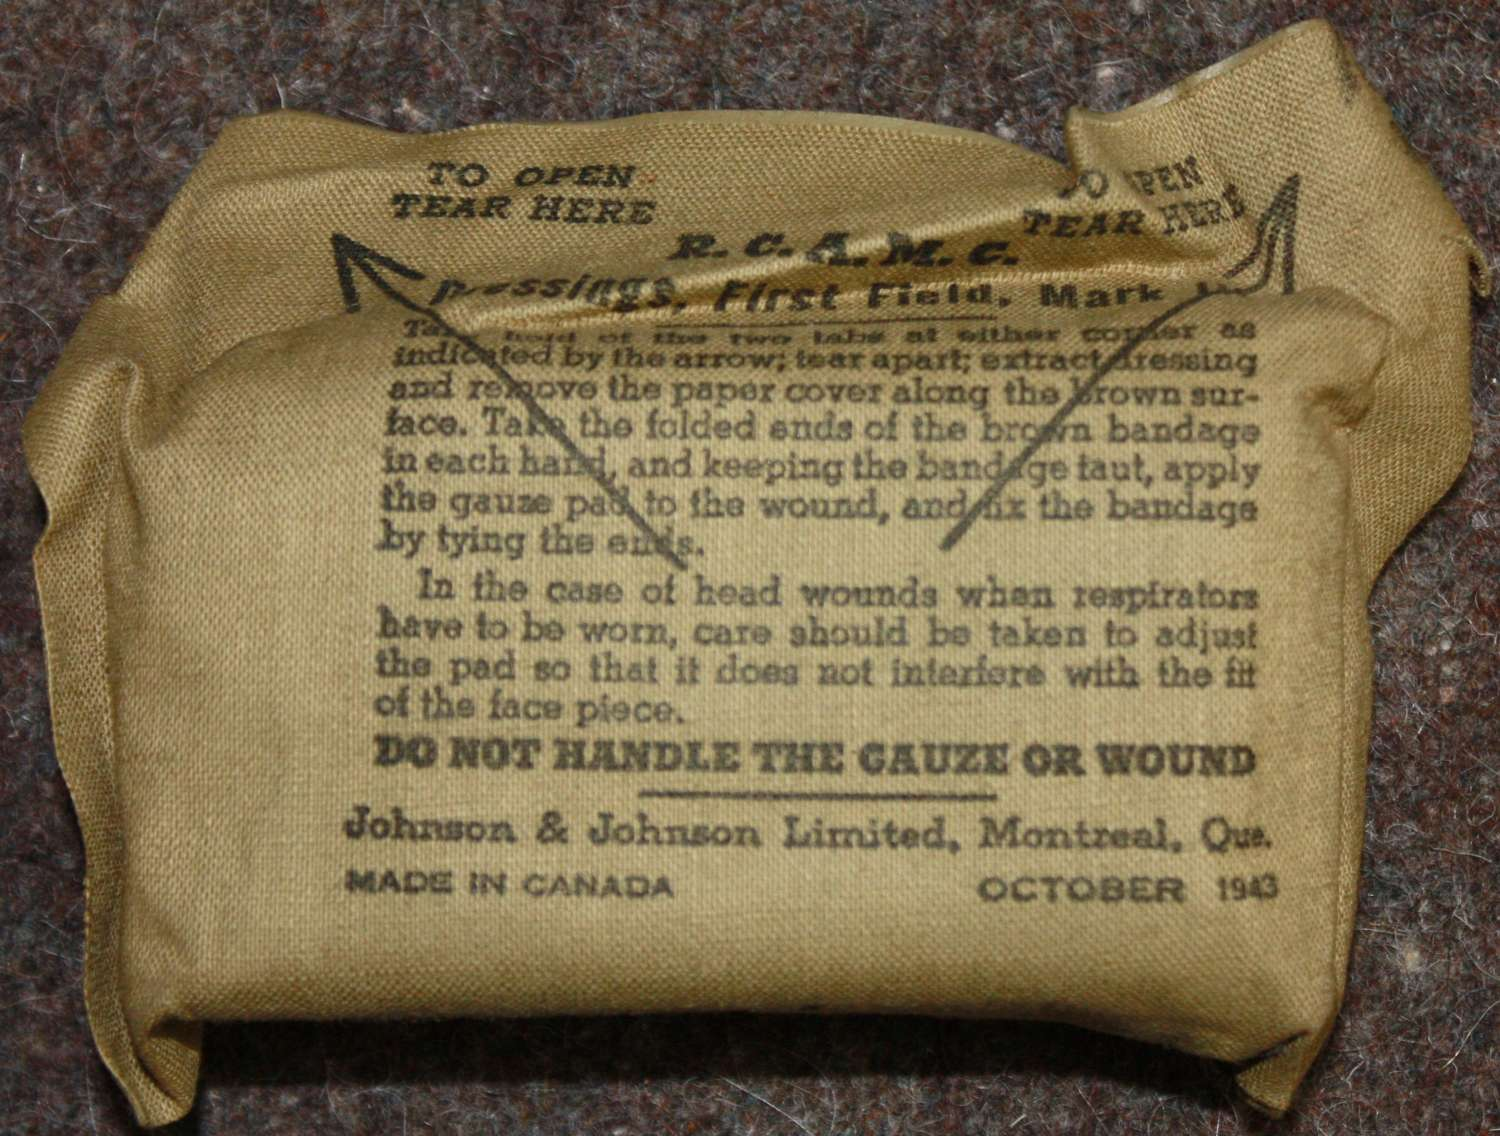 A 1943 DATED CANADIAN 1ST FIELD DRESSING